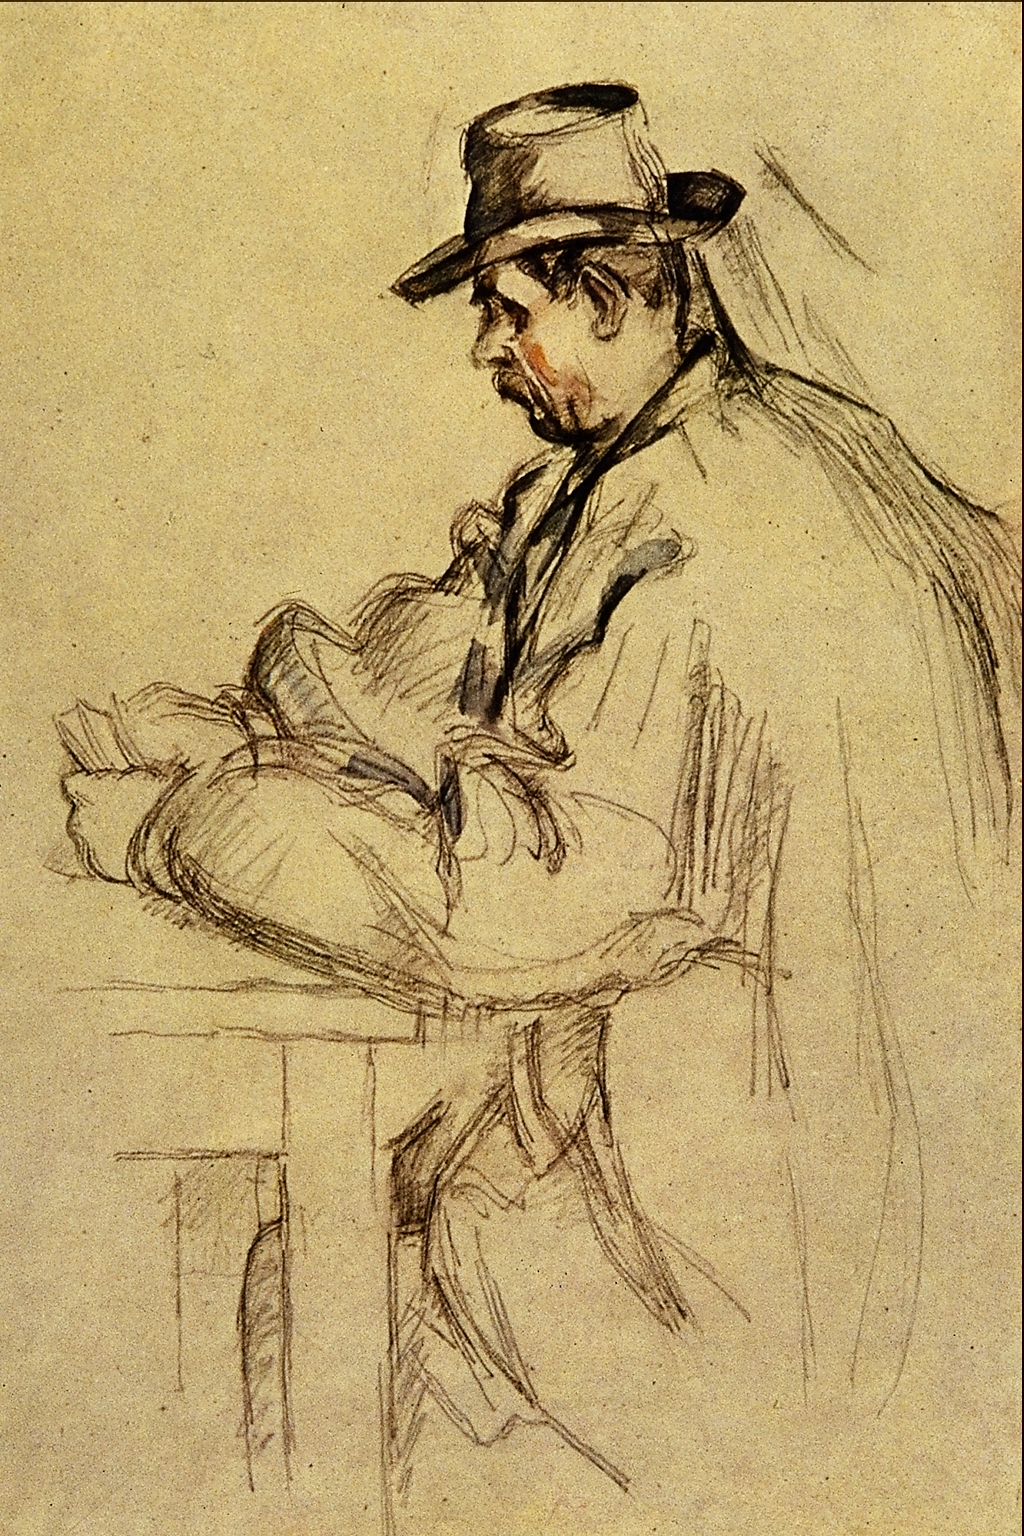 Paul Cézanne,  Study for Card Players , n.d. Image courtesy of Wikimedia.